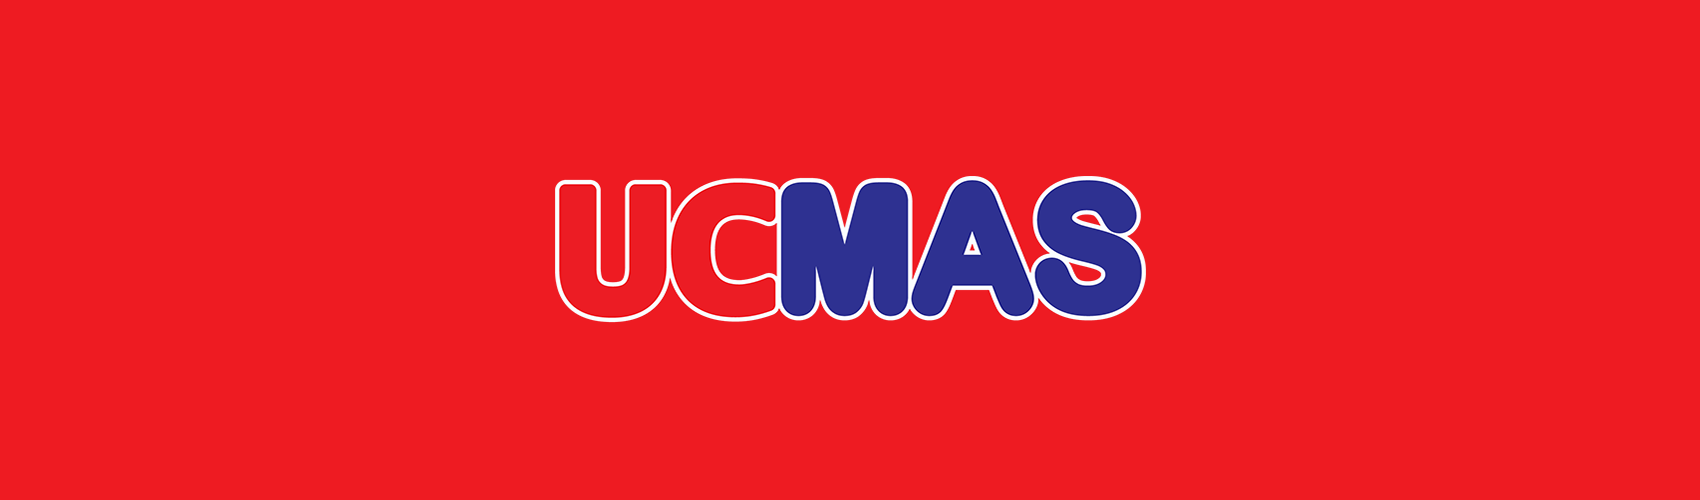 header-ucmas-red-big